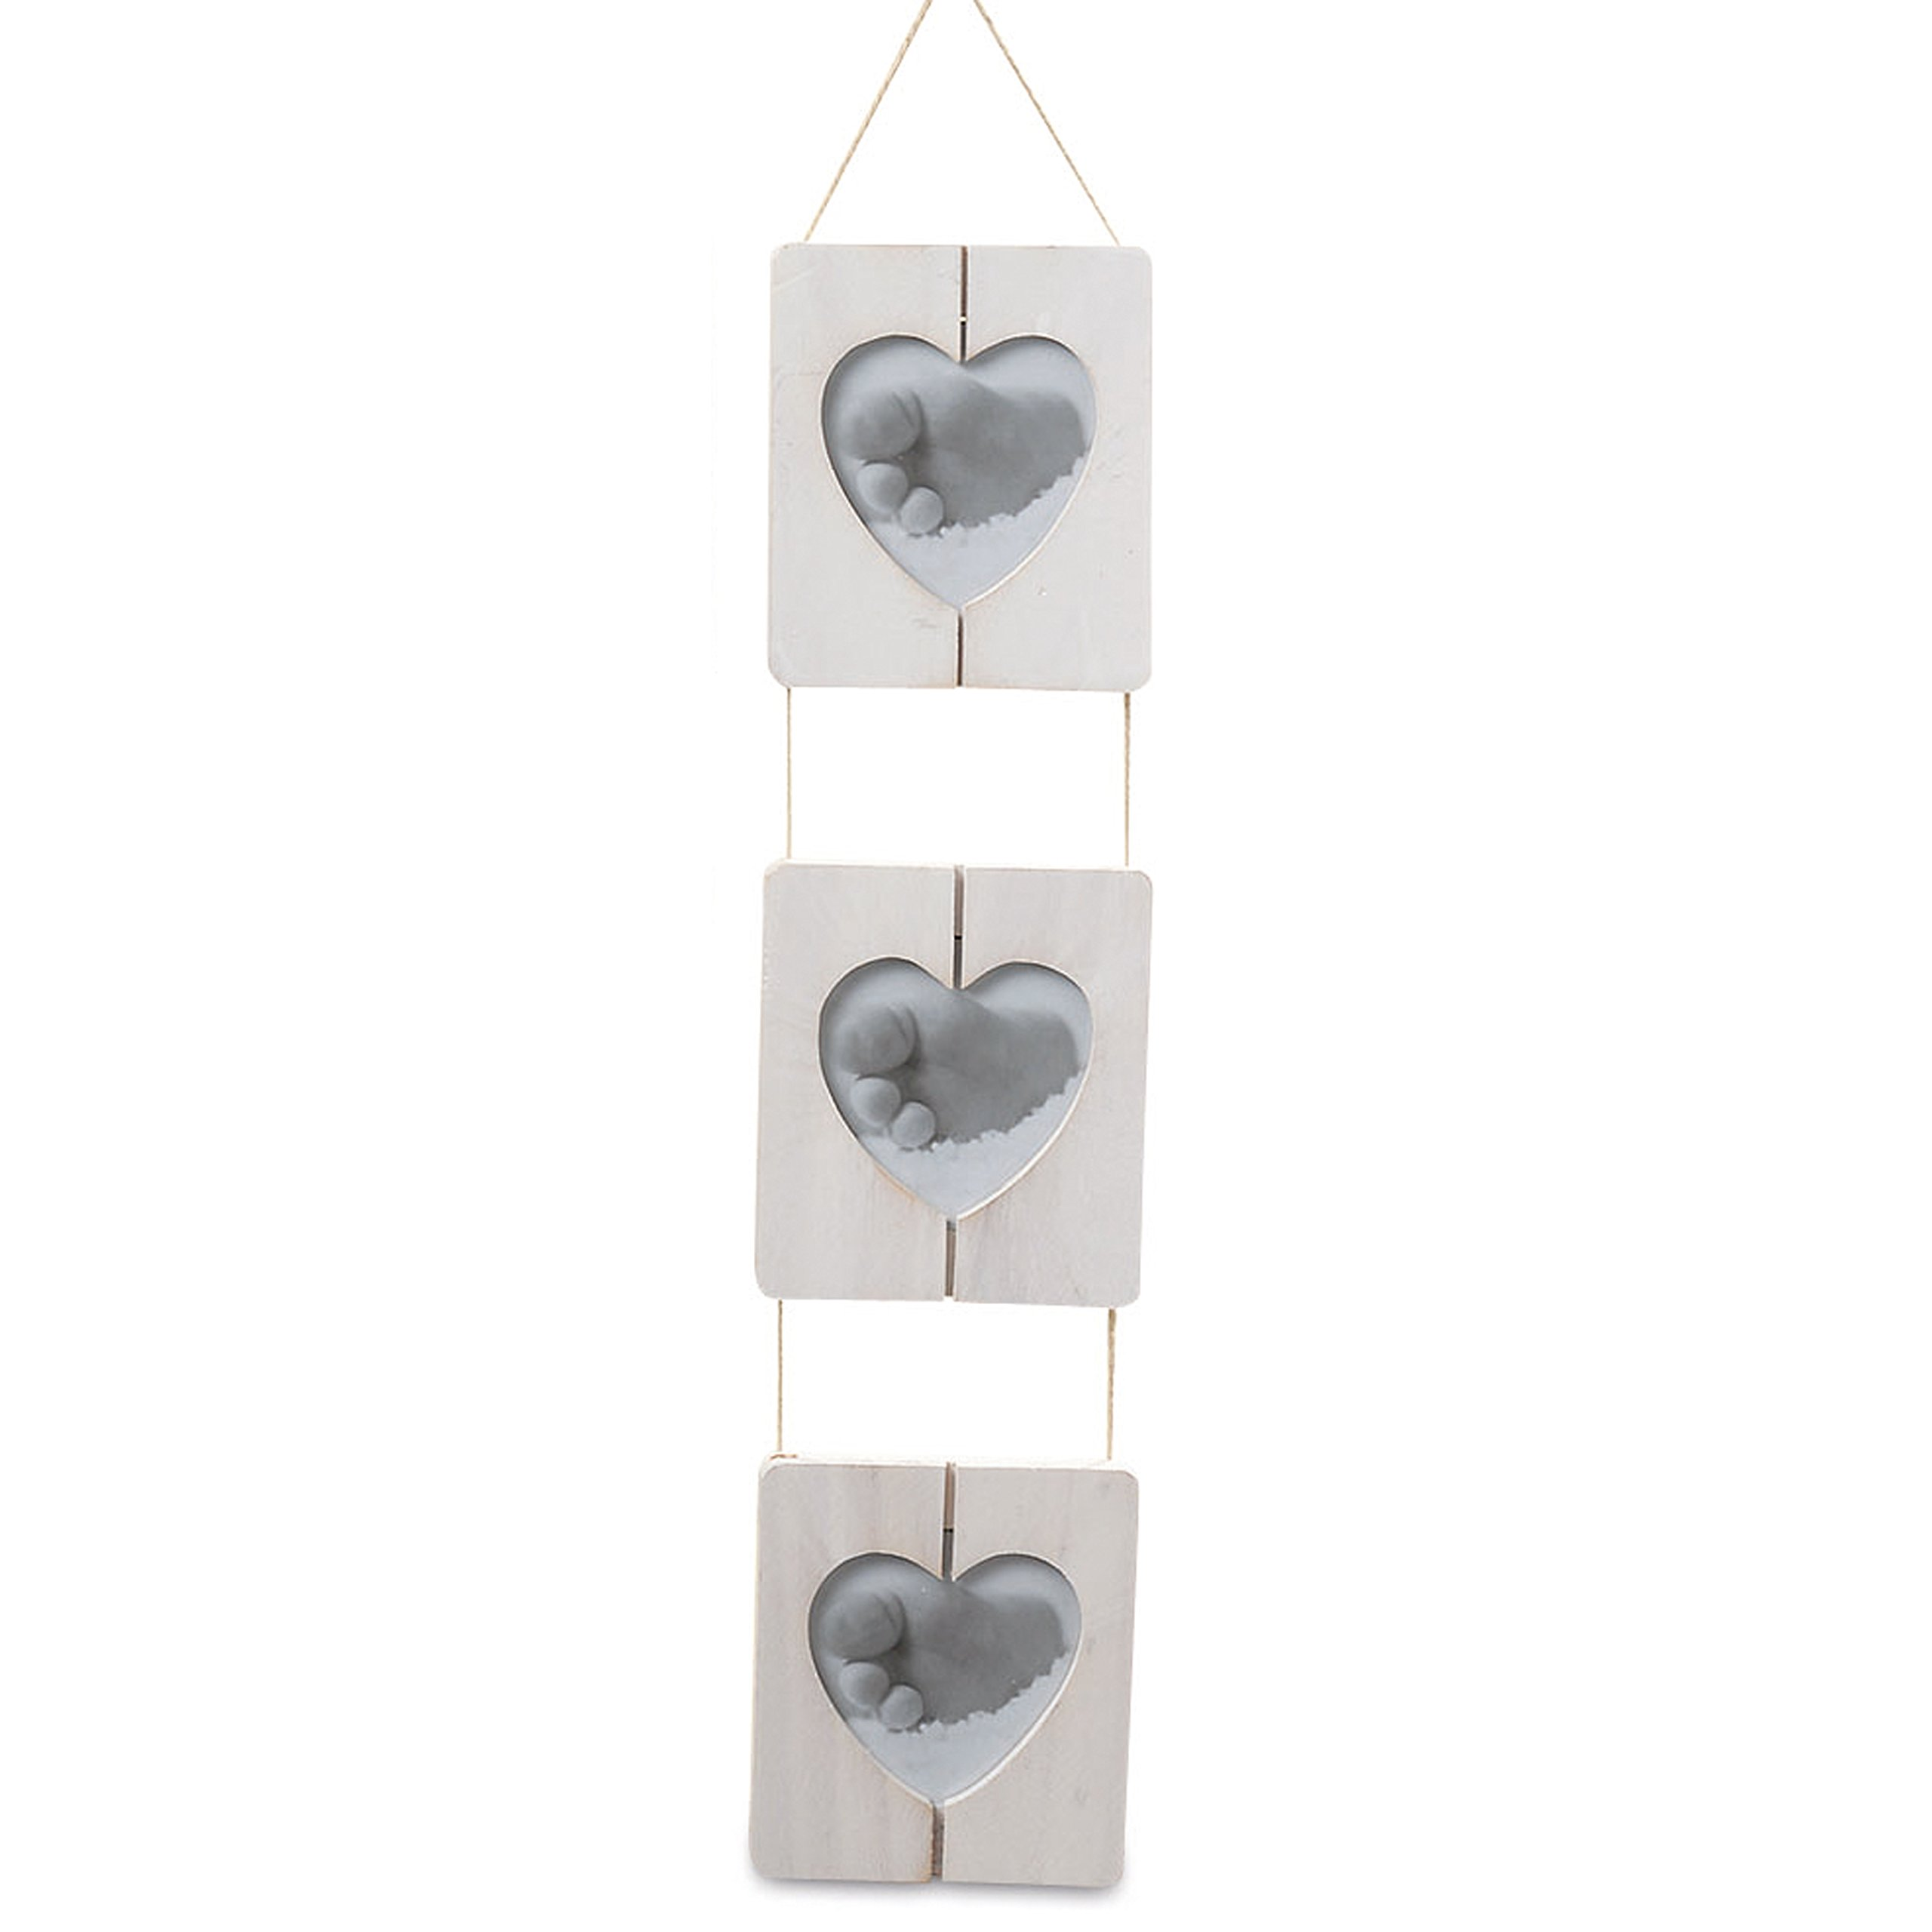 Whole House Worlds The Farmer's Market Trio of Heart Photo Frames, Shiplap, Natural Twine, Rustic Gray White Wood, Crafted By Hand, 4 3/4 Wide, 20 Inches Long, By